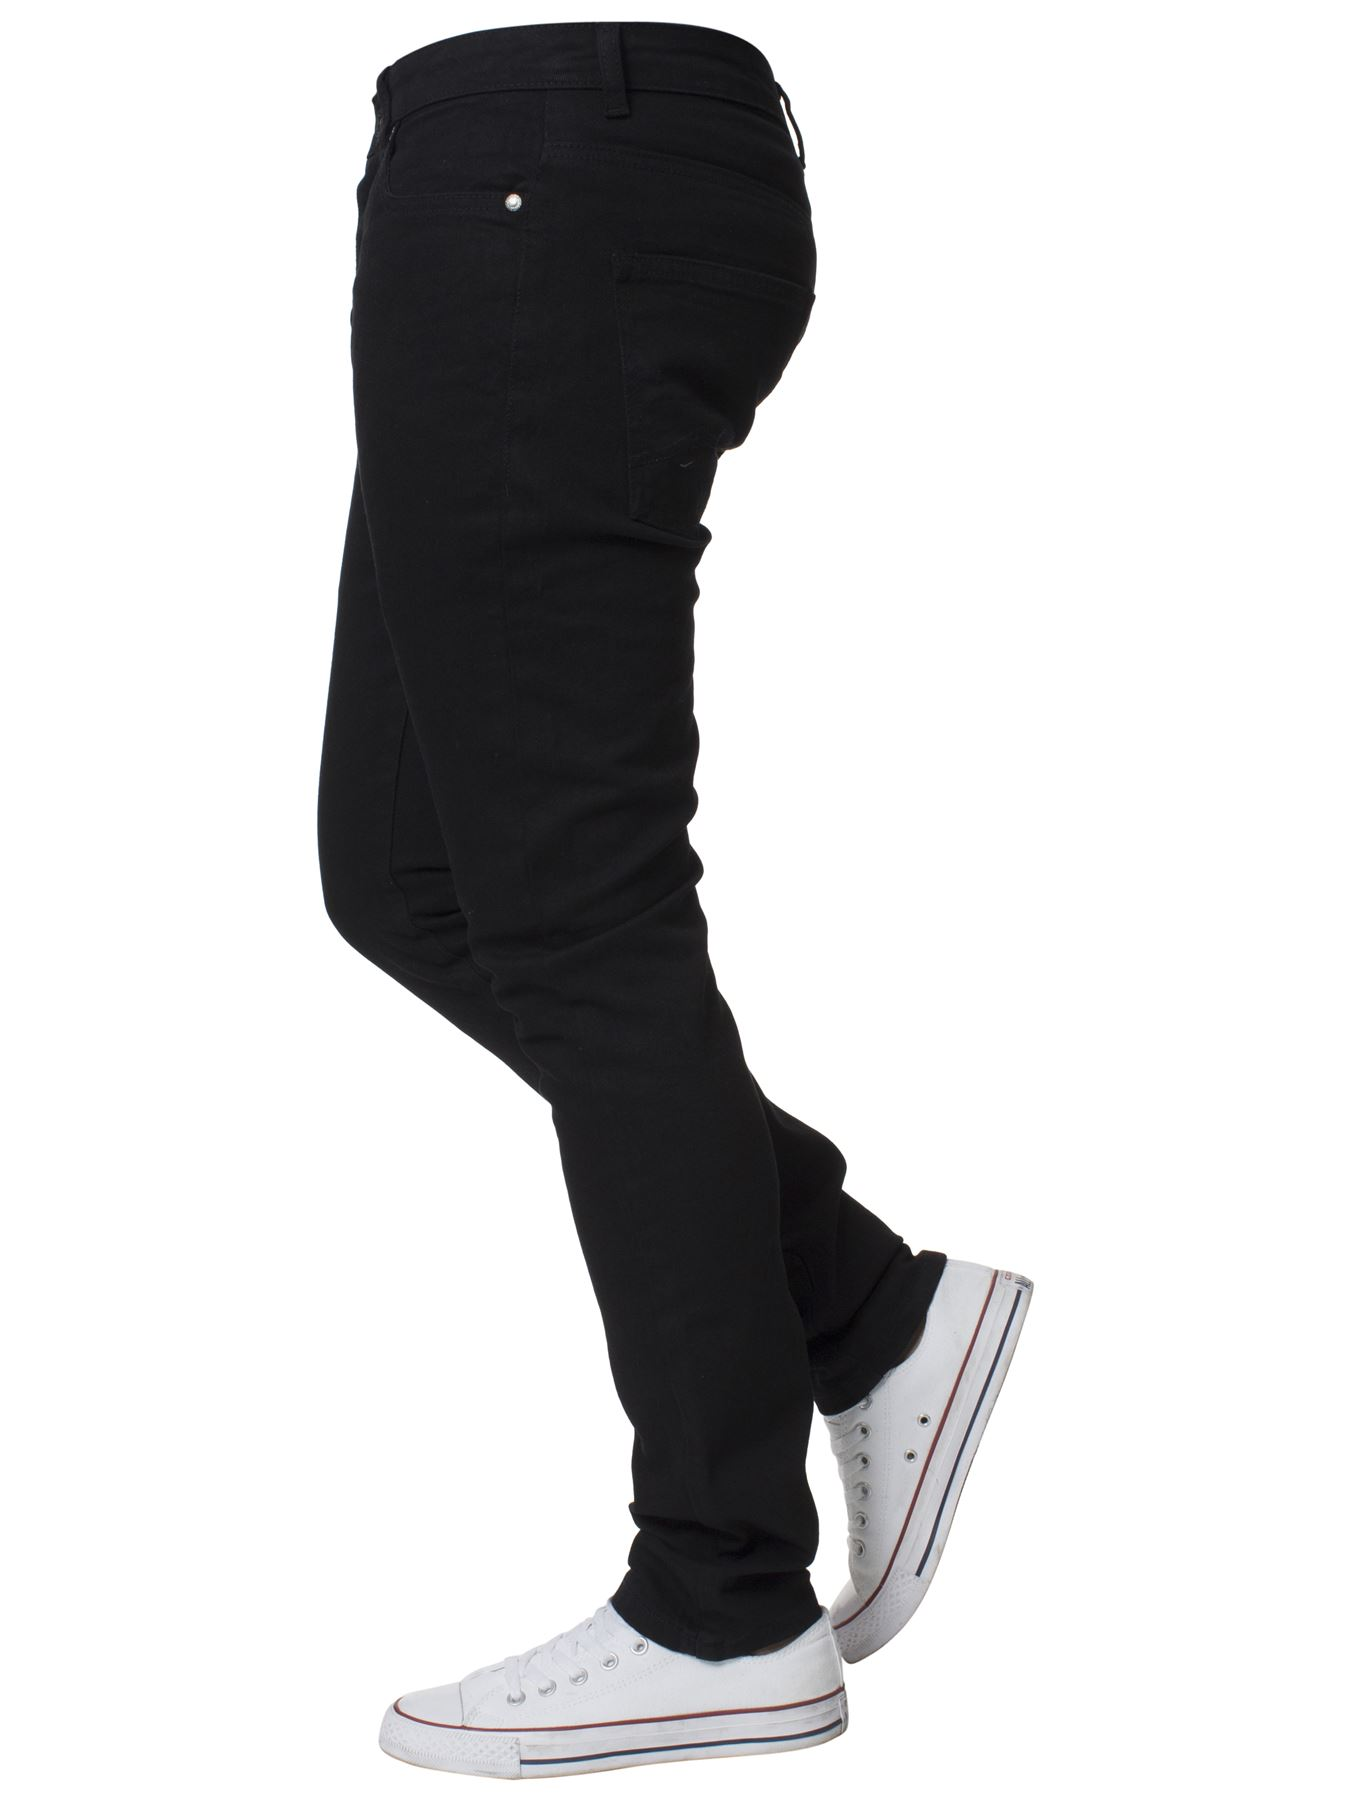 Mens-Skinny-Stretch-Jeans-Slim-Fit-Flex-Denim-Trousers-Pants-King-Sizes-by-Kruze thumbnail 7